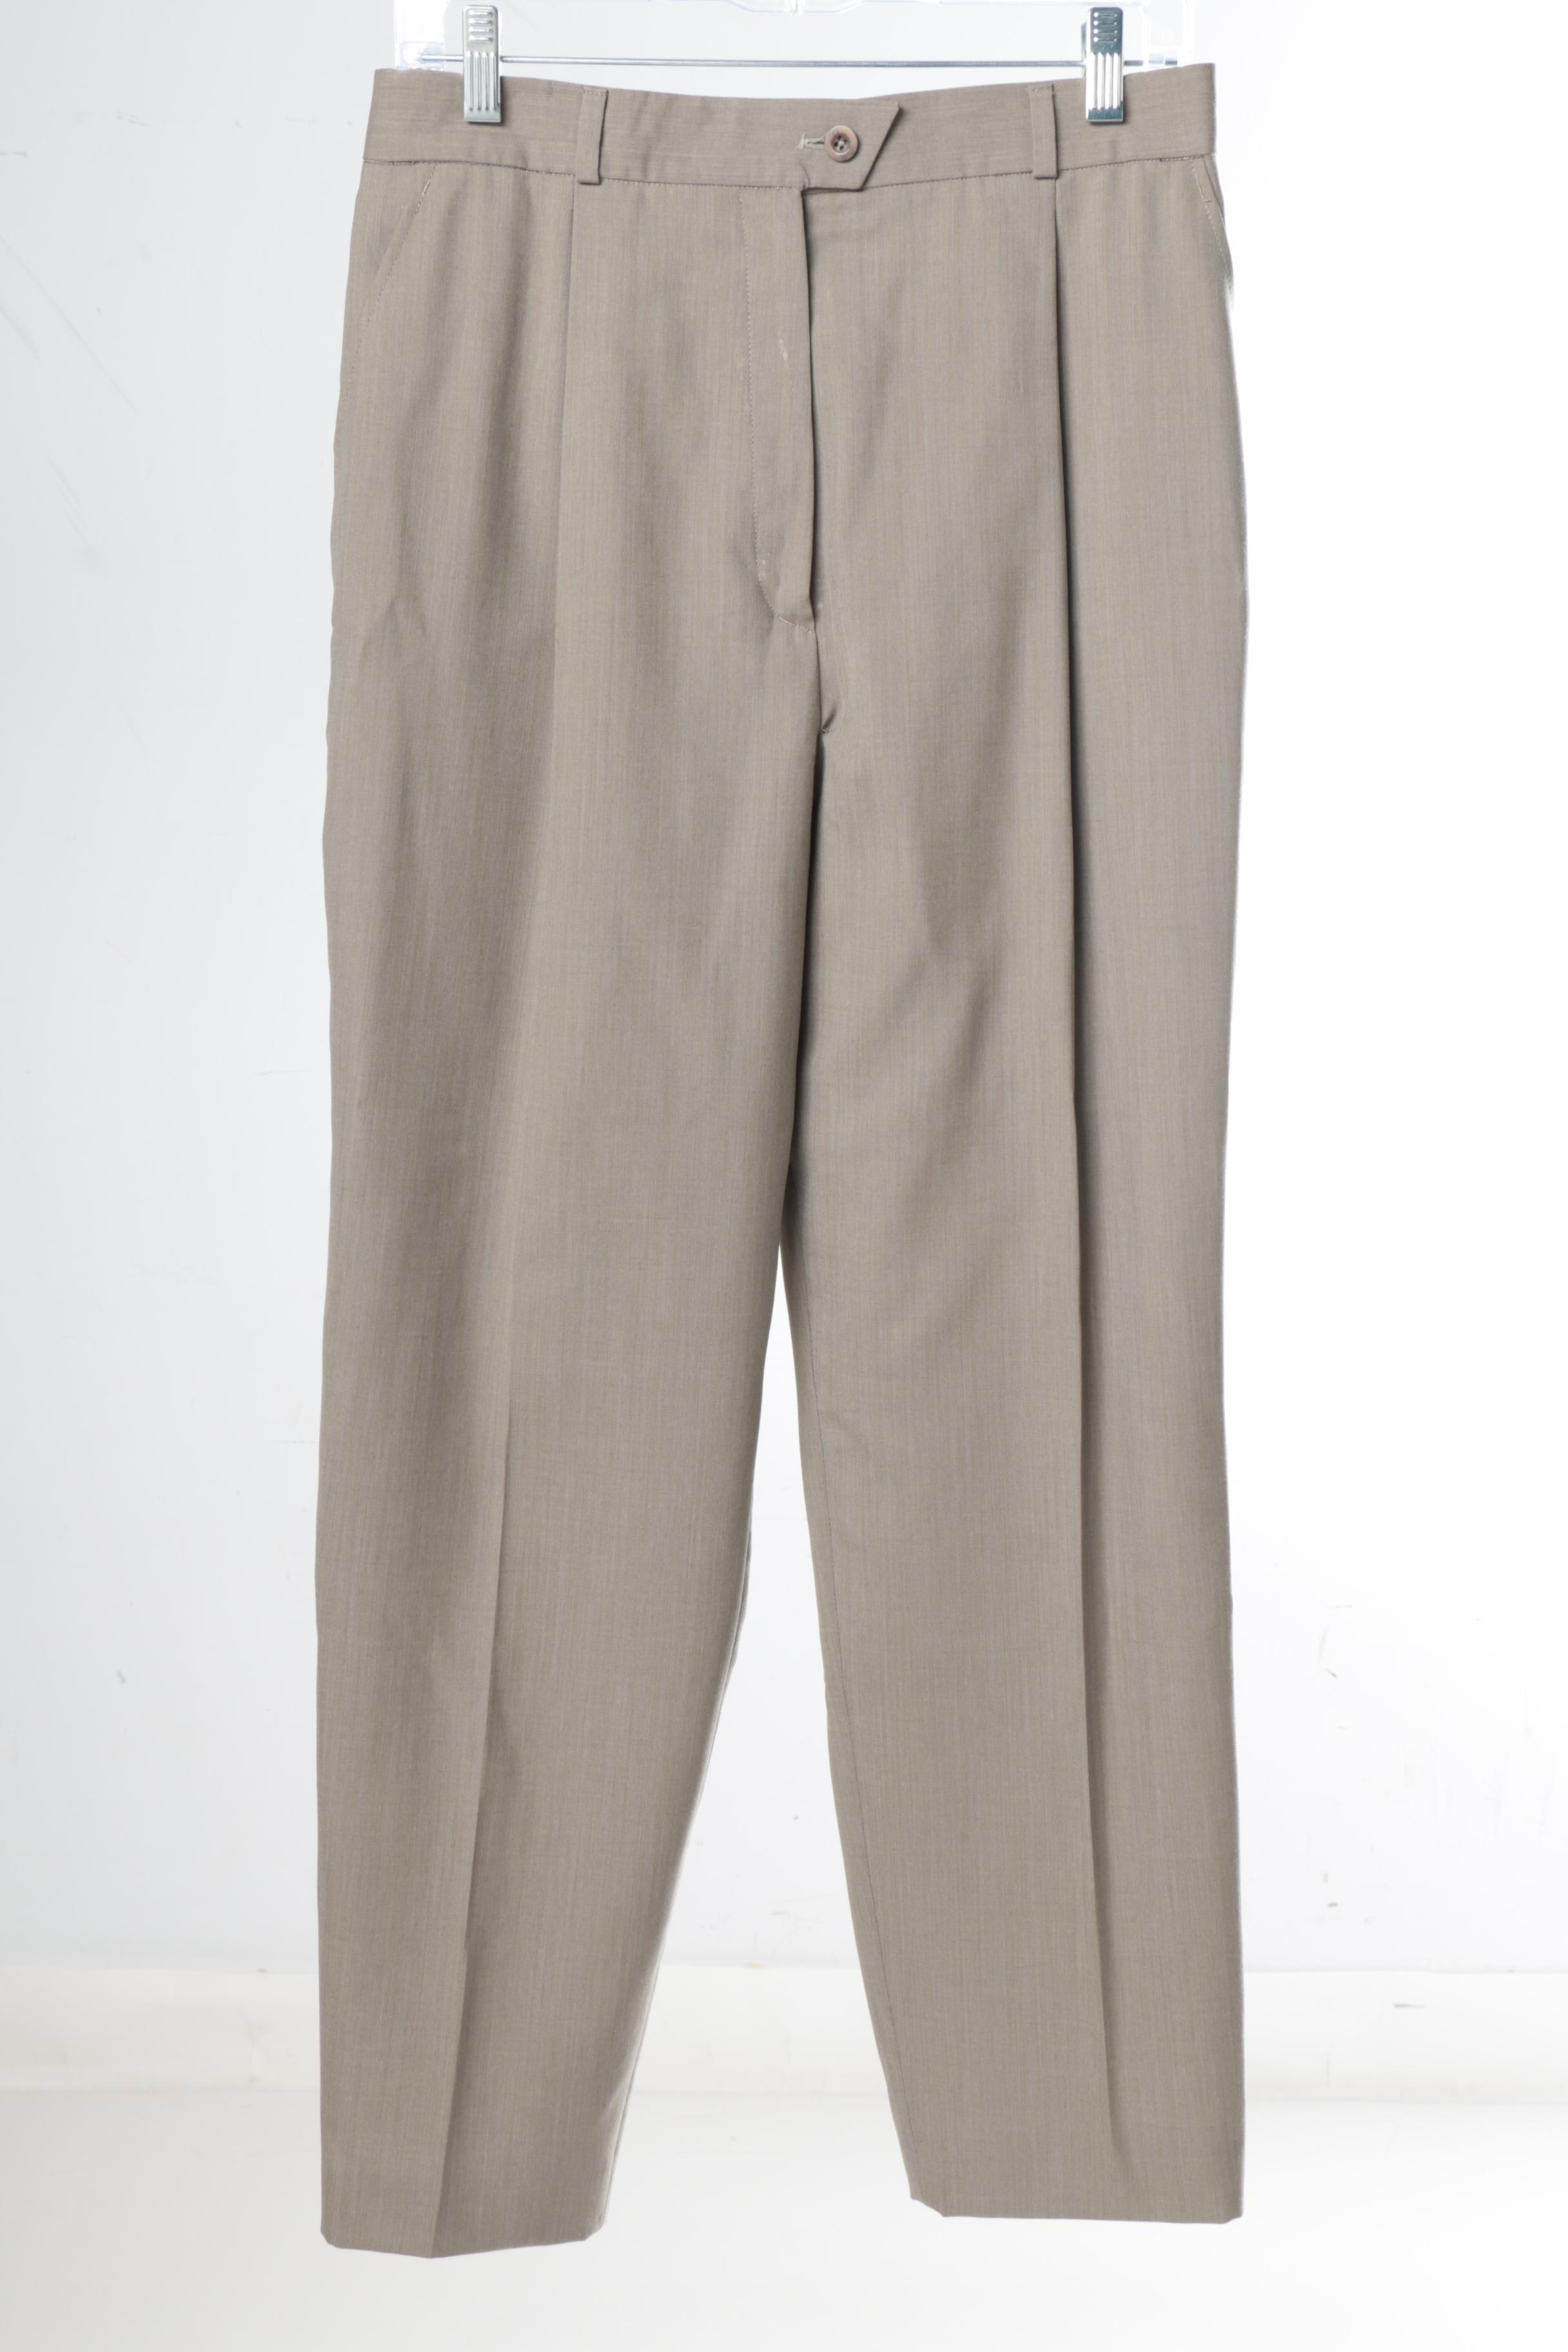 Women's Suit and Pants : EBTH